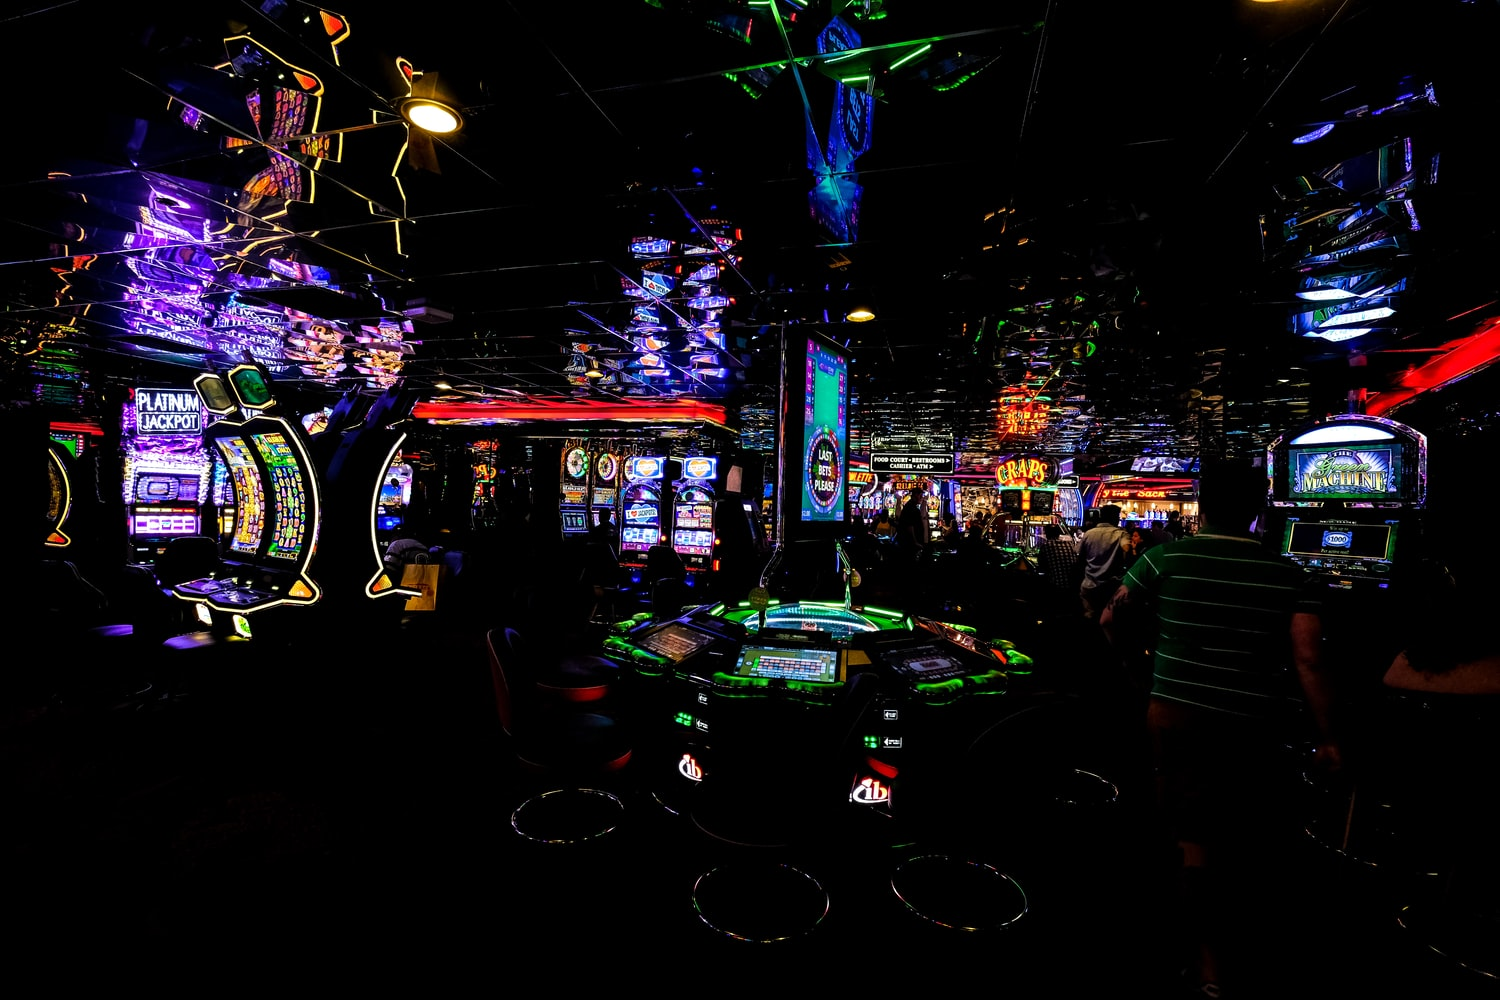 casino machines in a dark room